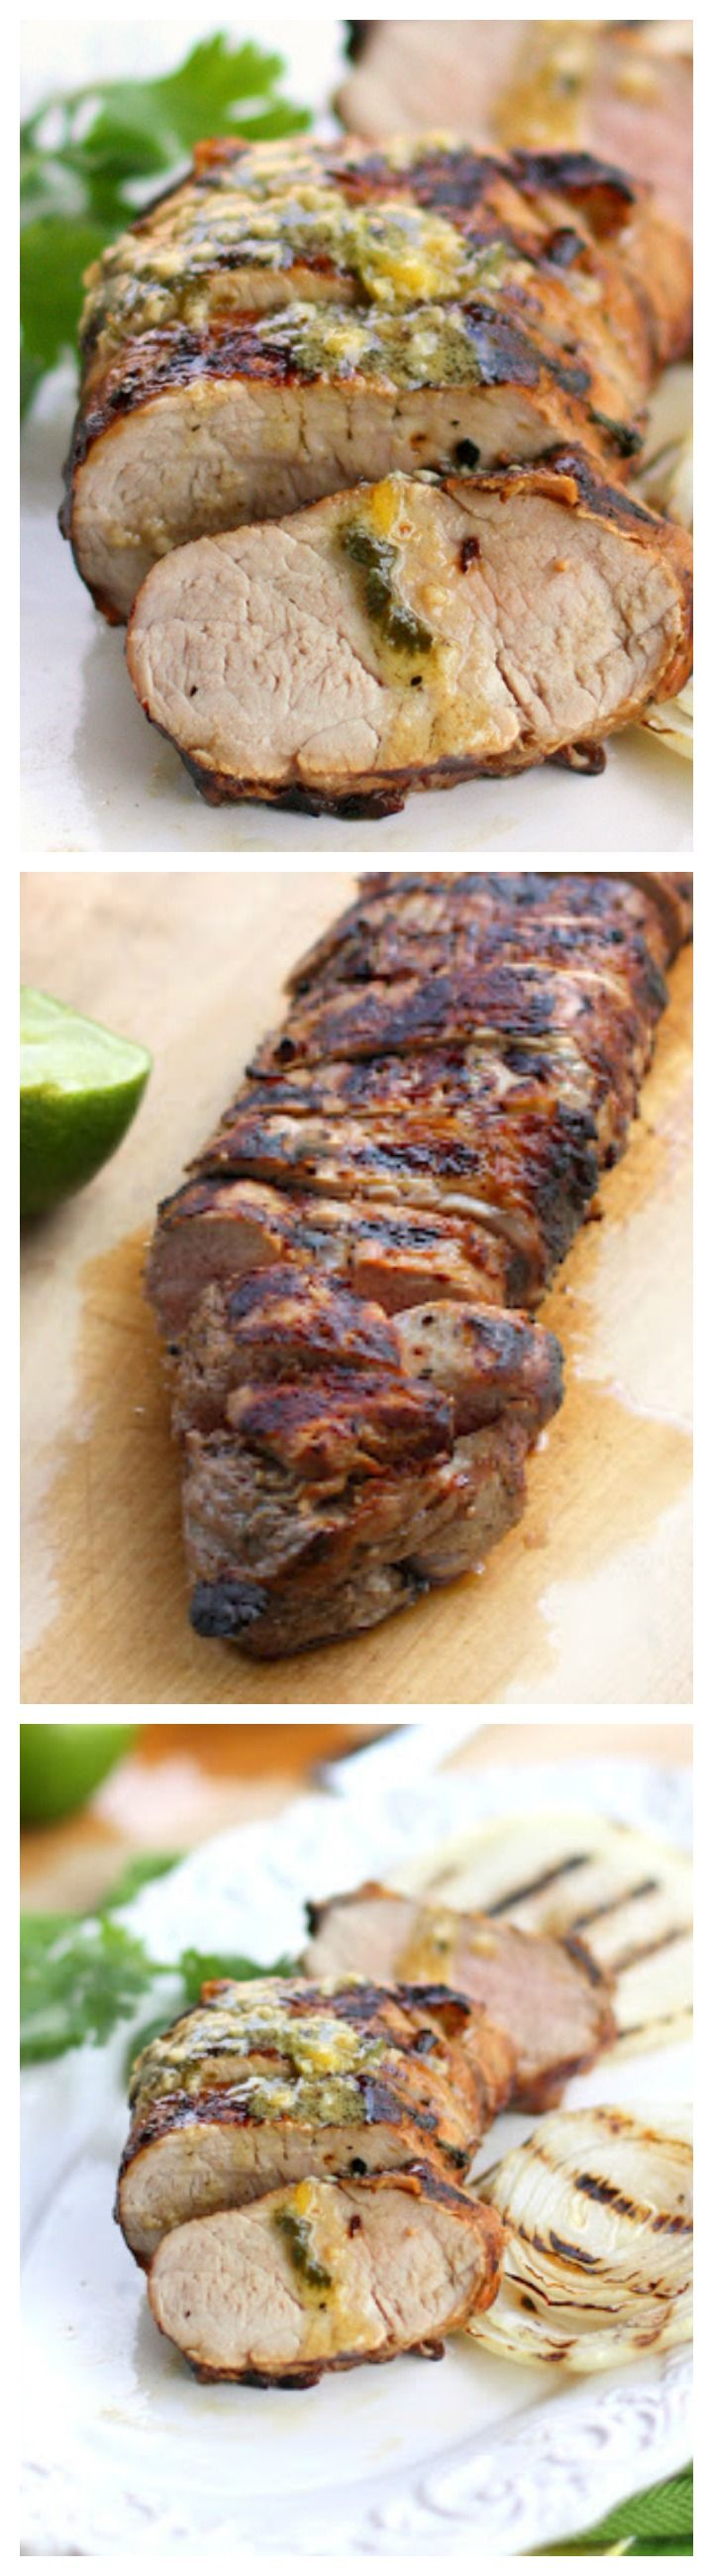 Mojo Pork Tenderloin - Garlic and citrus infused pork. Super tender and great flavor. the-girl-who-ate-everything.com